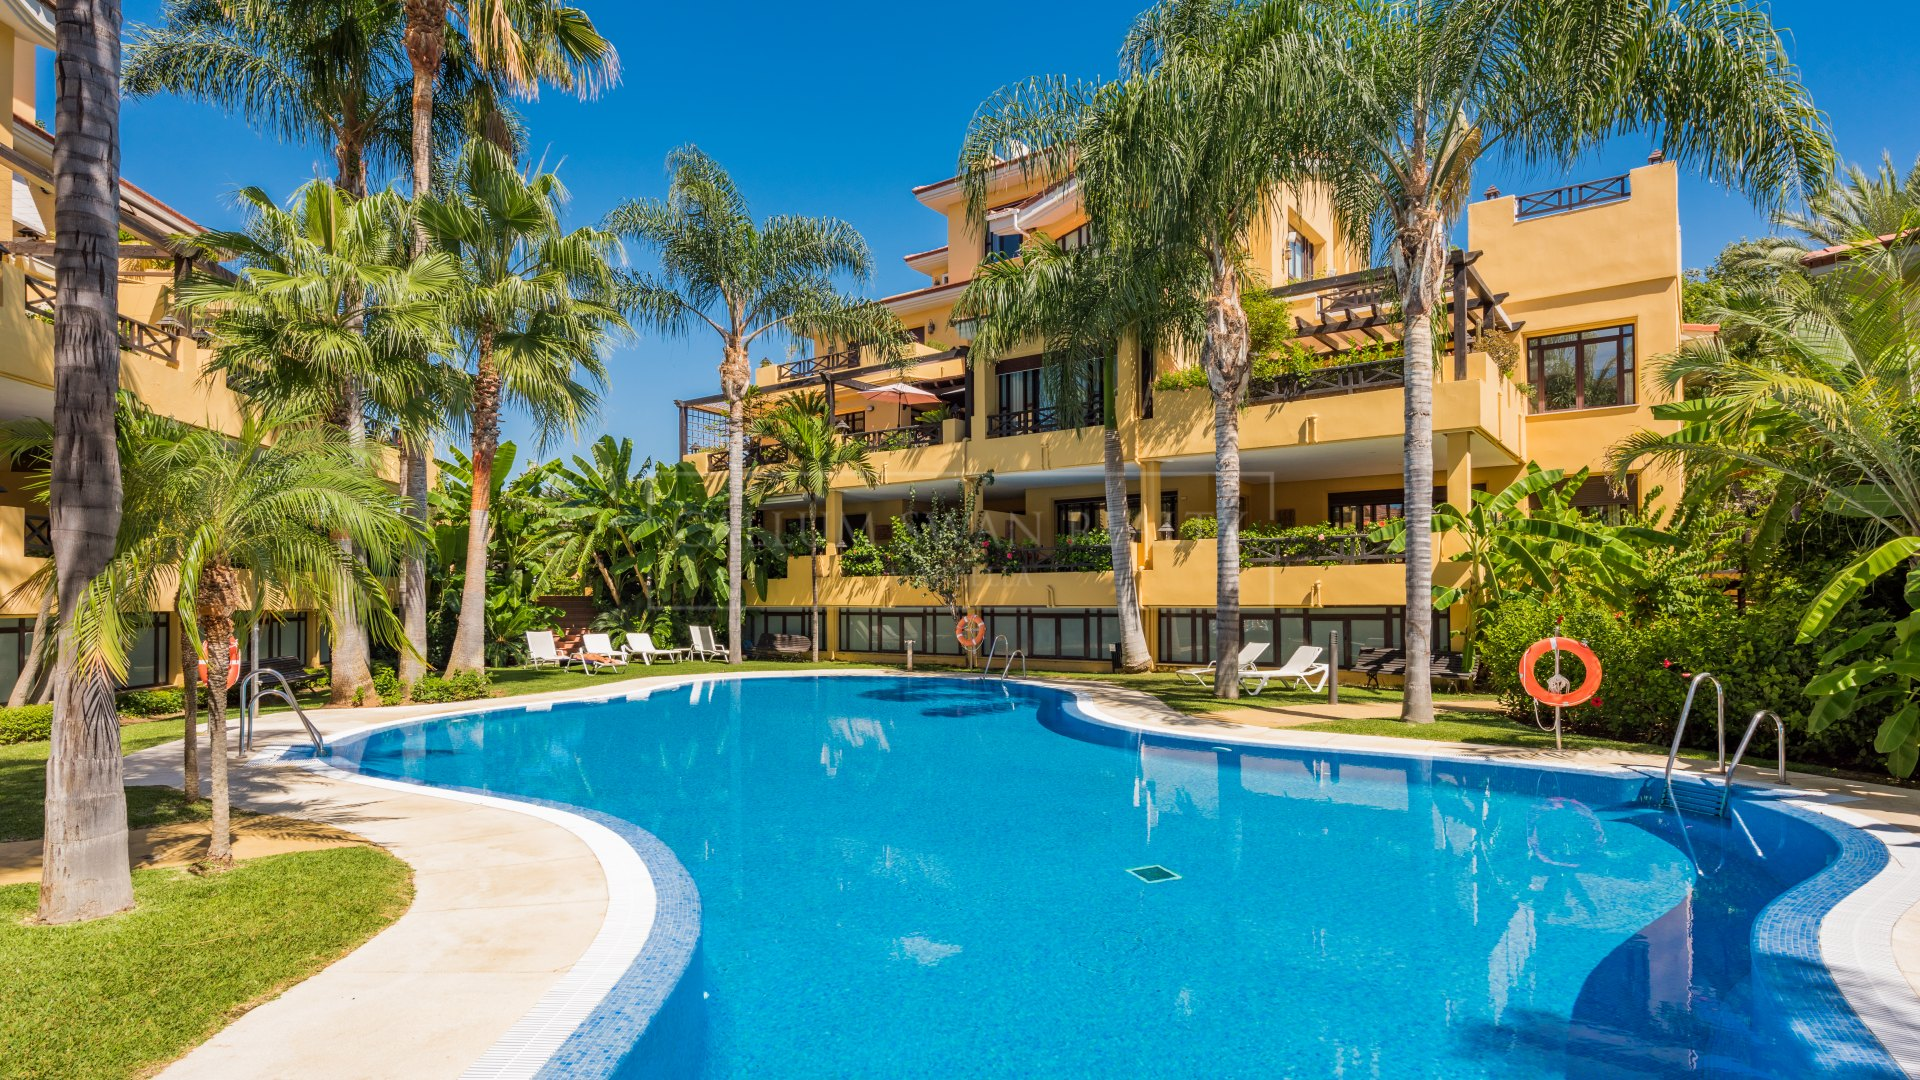 Ground Floor Apartment for sale and rent in Bahia de Banus, Marbella - Puerto Banus